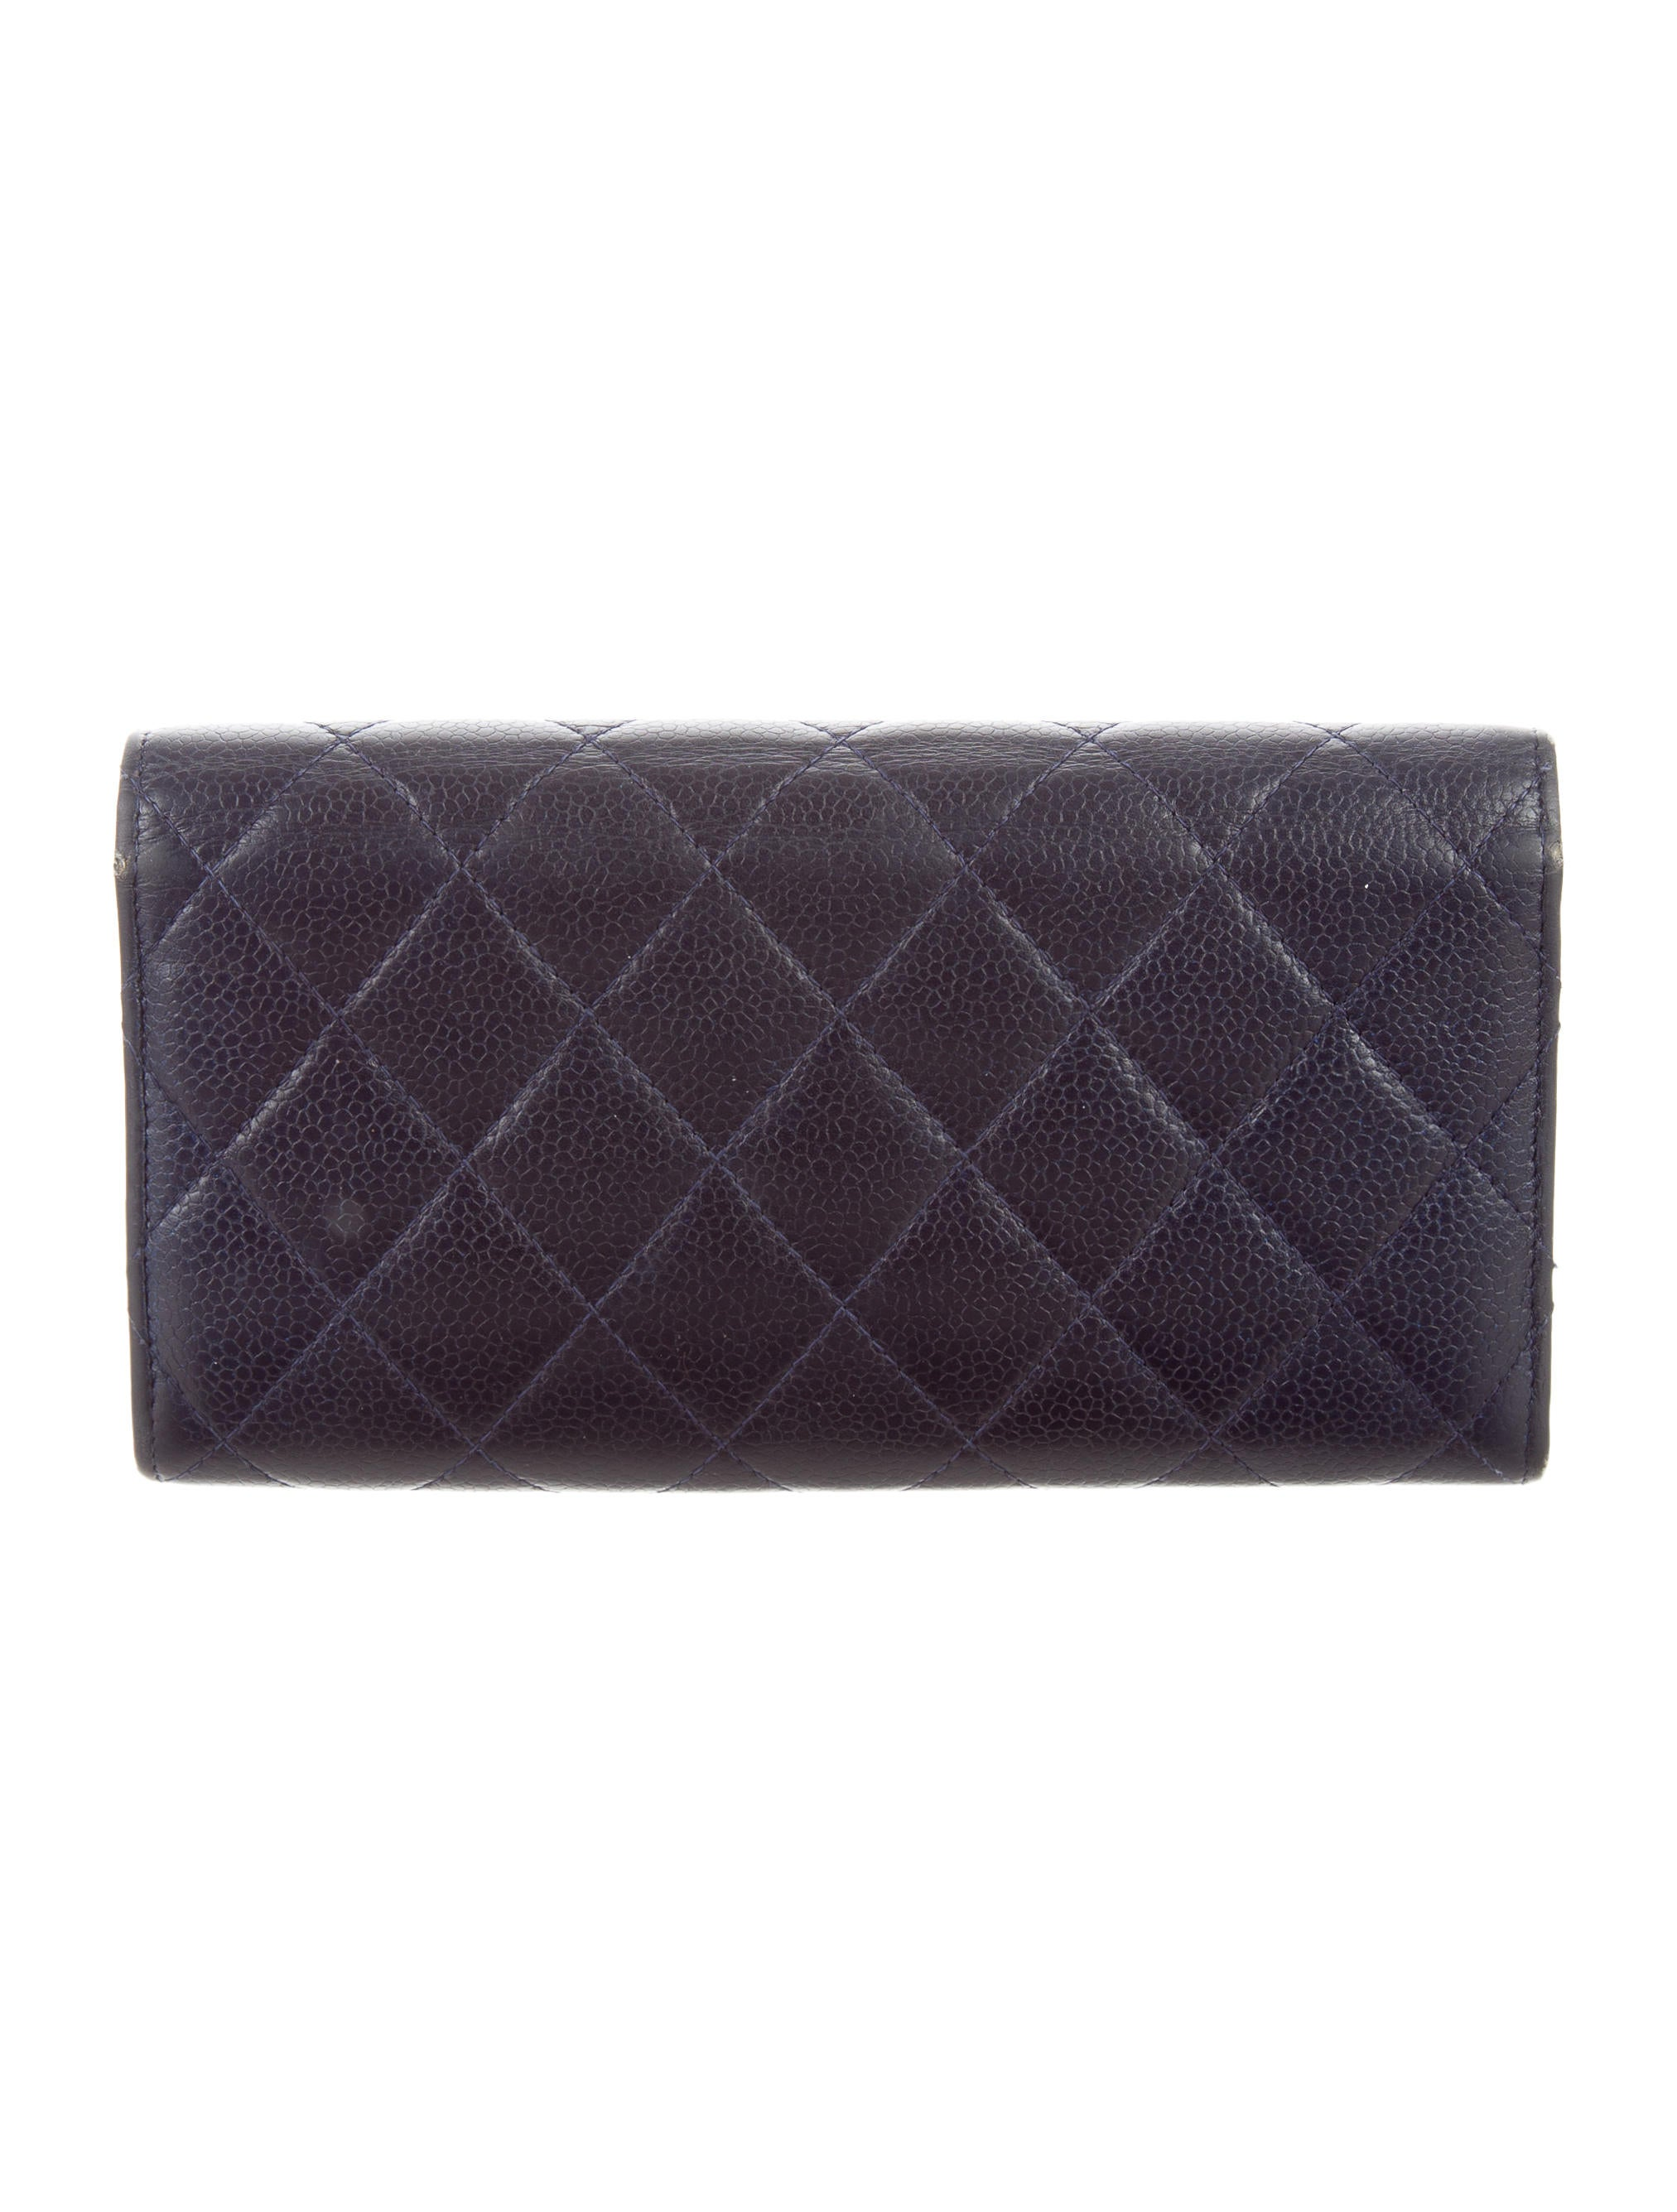 33b3ad229f16 Chanel Gusset Flap Wallet | Stanford Center for Opportunity Policy ...